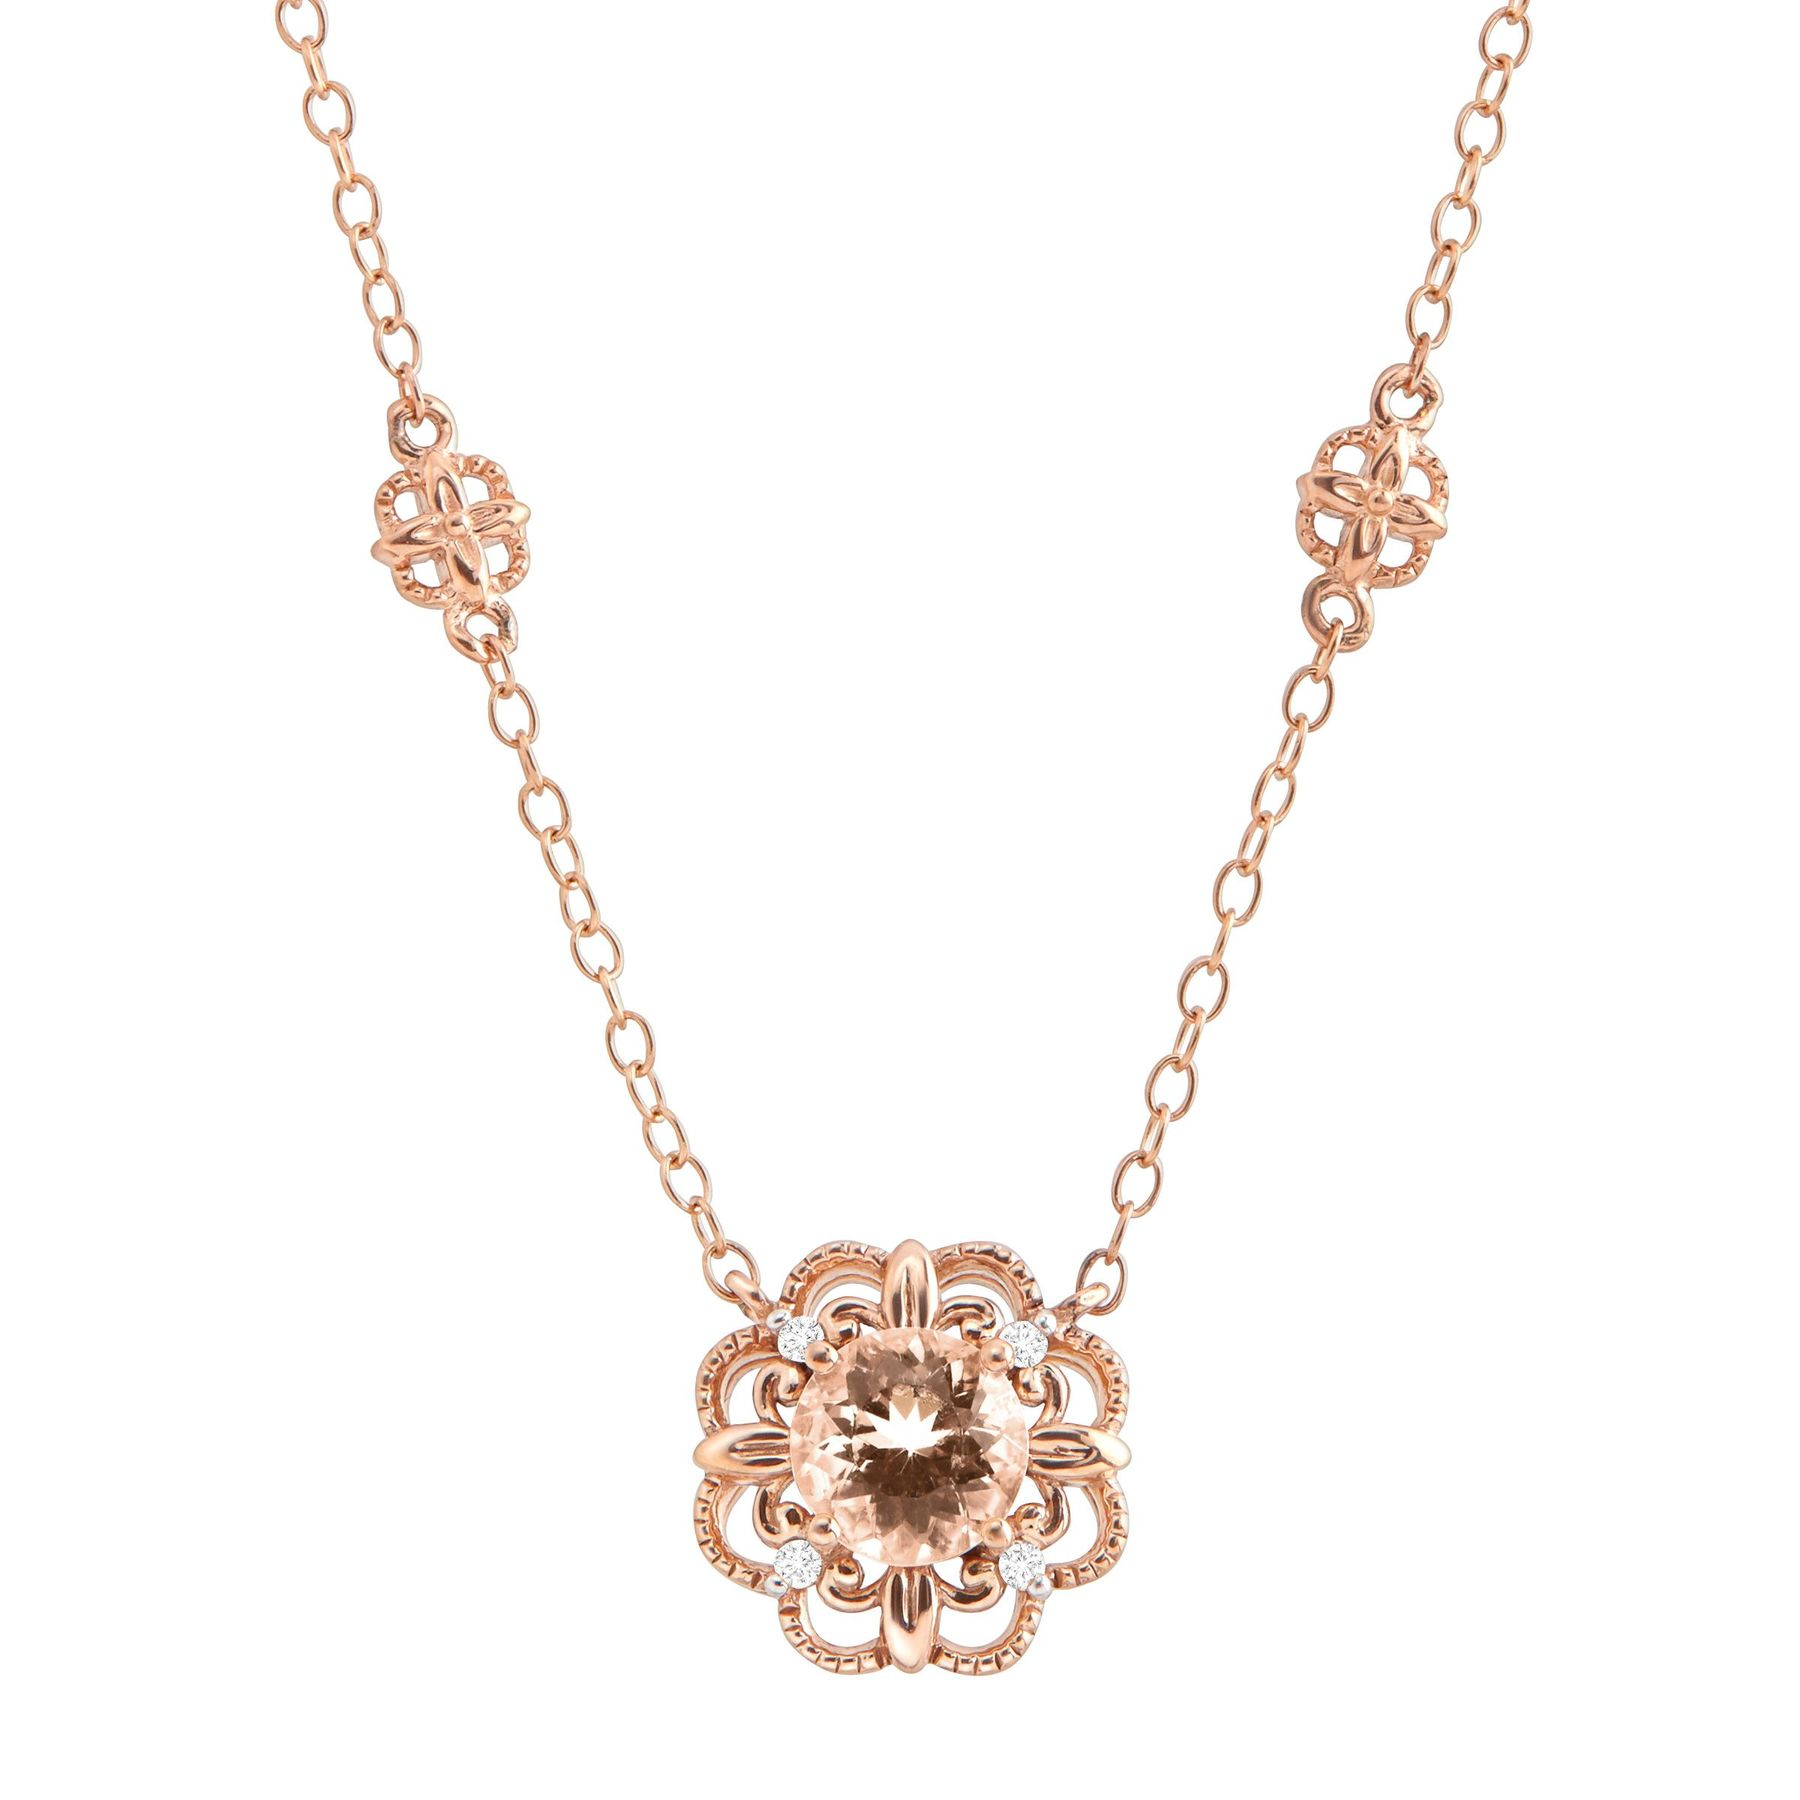 fpx le in neapolitan vian topaz t opal product w for collection pendant crazy gold macys image main shop white peach rose necklace created ct morganite